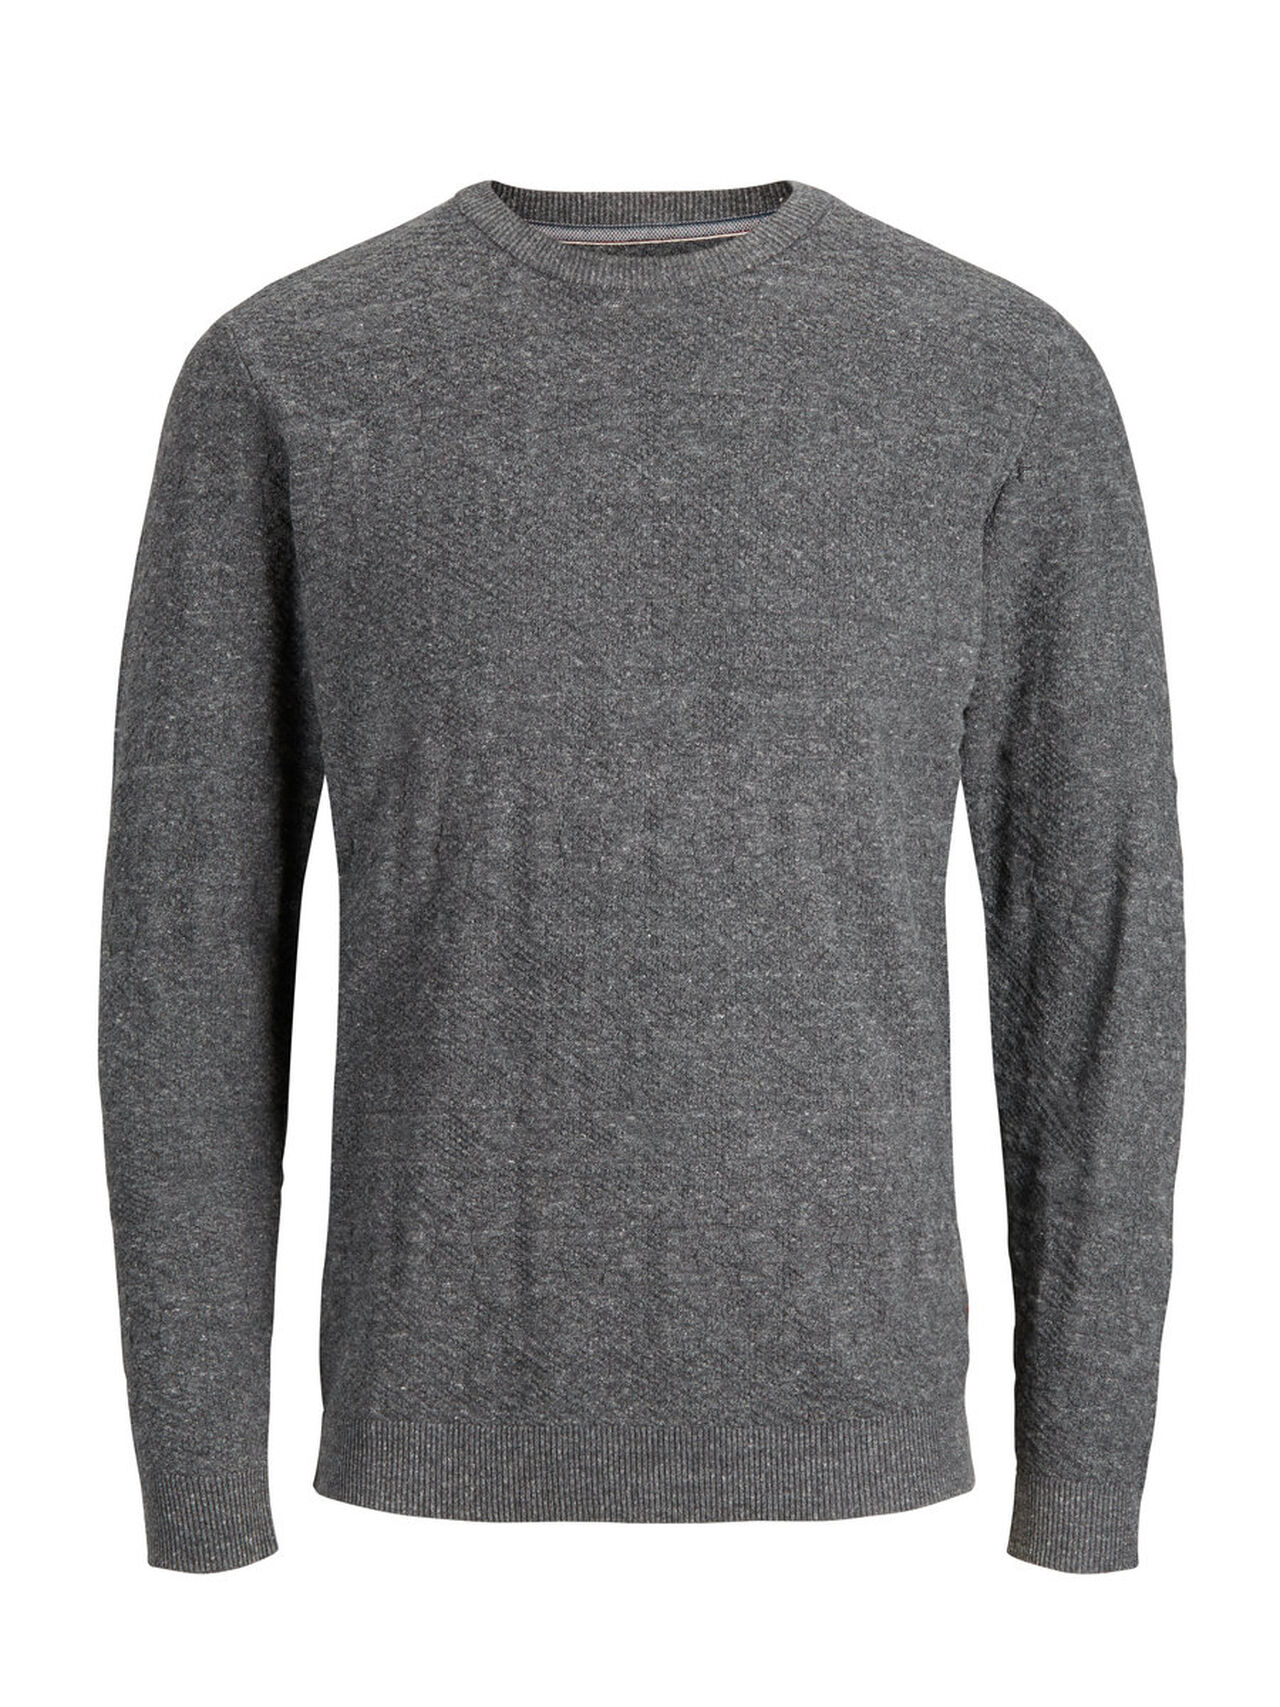 All-round Knitted Pullover